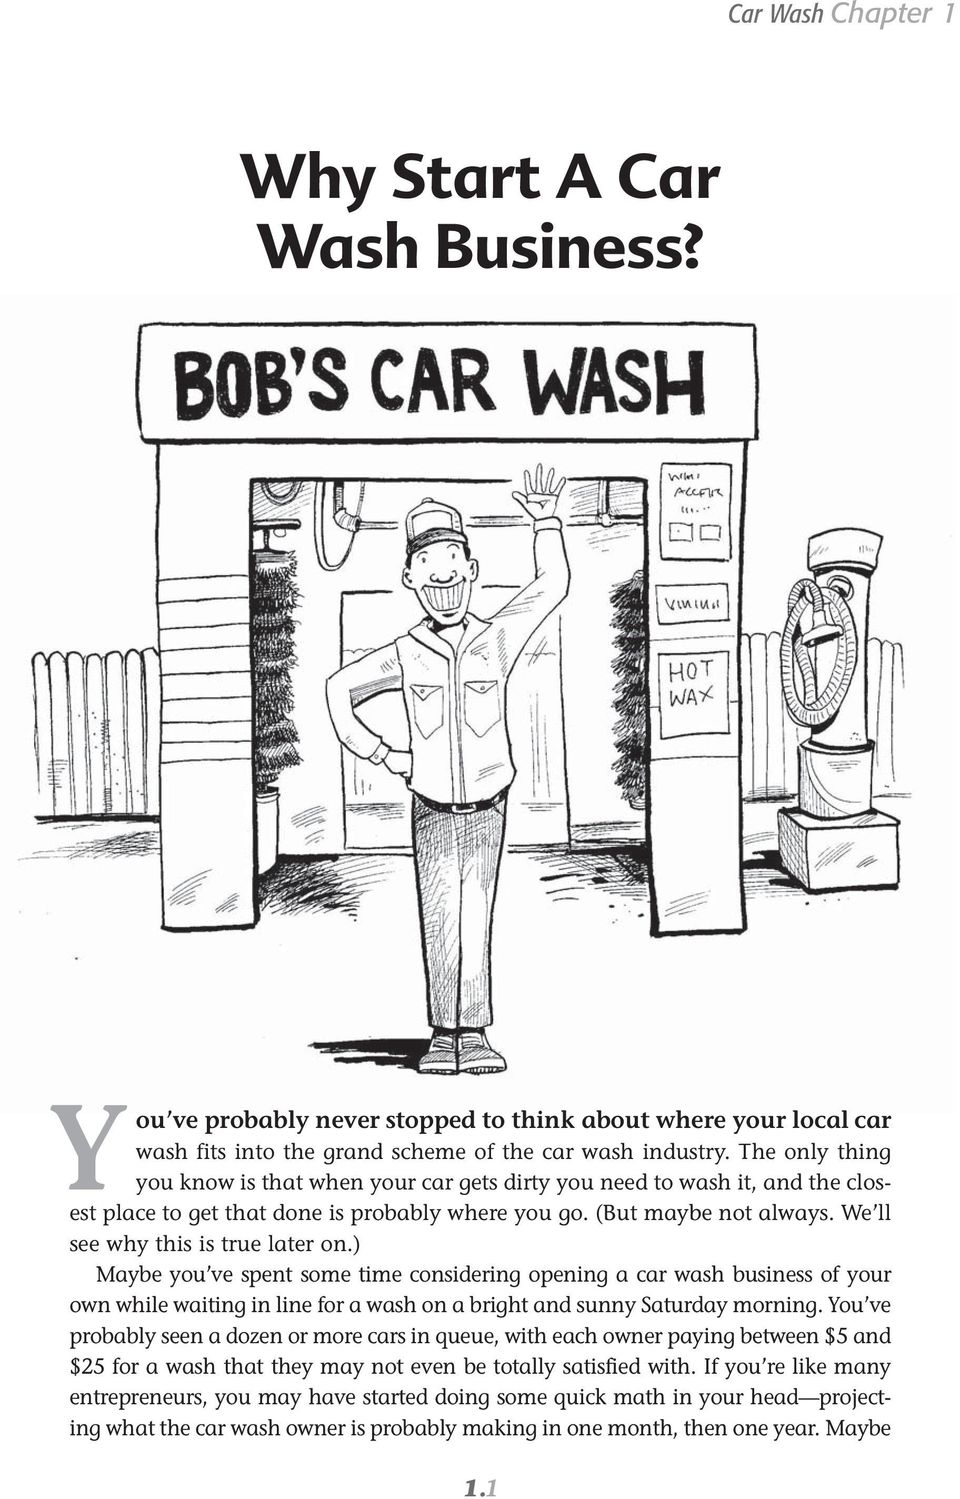 We ll see why this is true later on.) Maybe you ve spent some time considering opening a car wash business of your own while waiting in line for a wash on a bright and sunny Saturday morning.